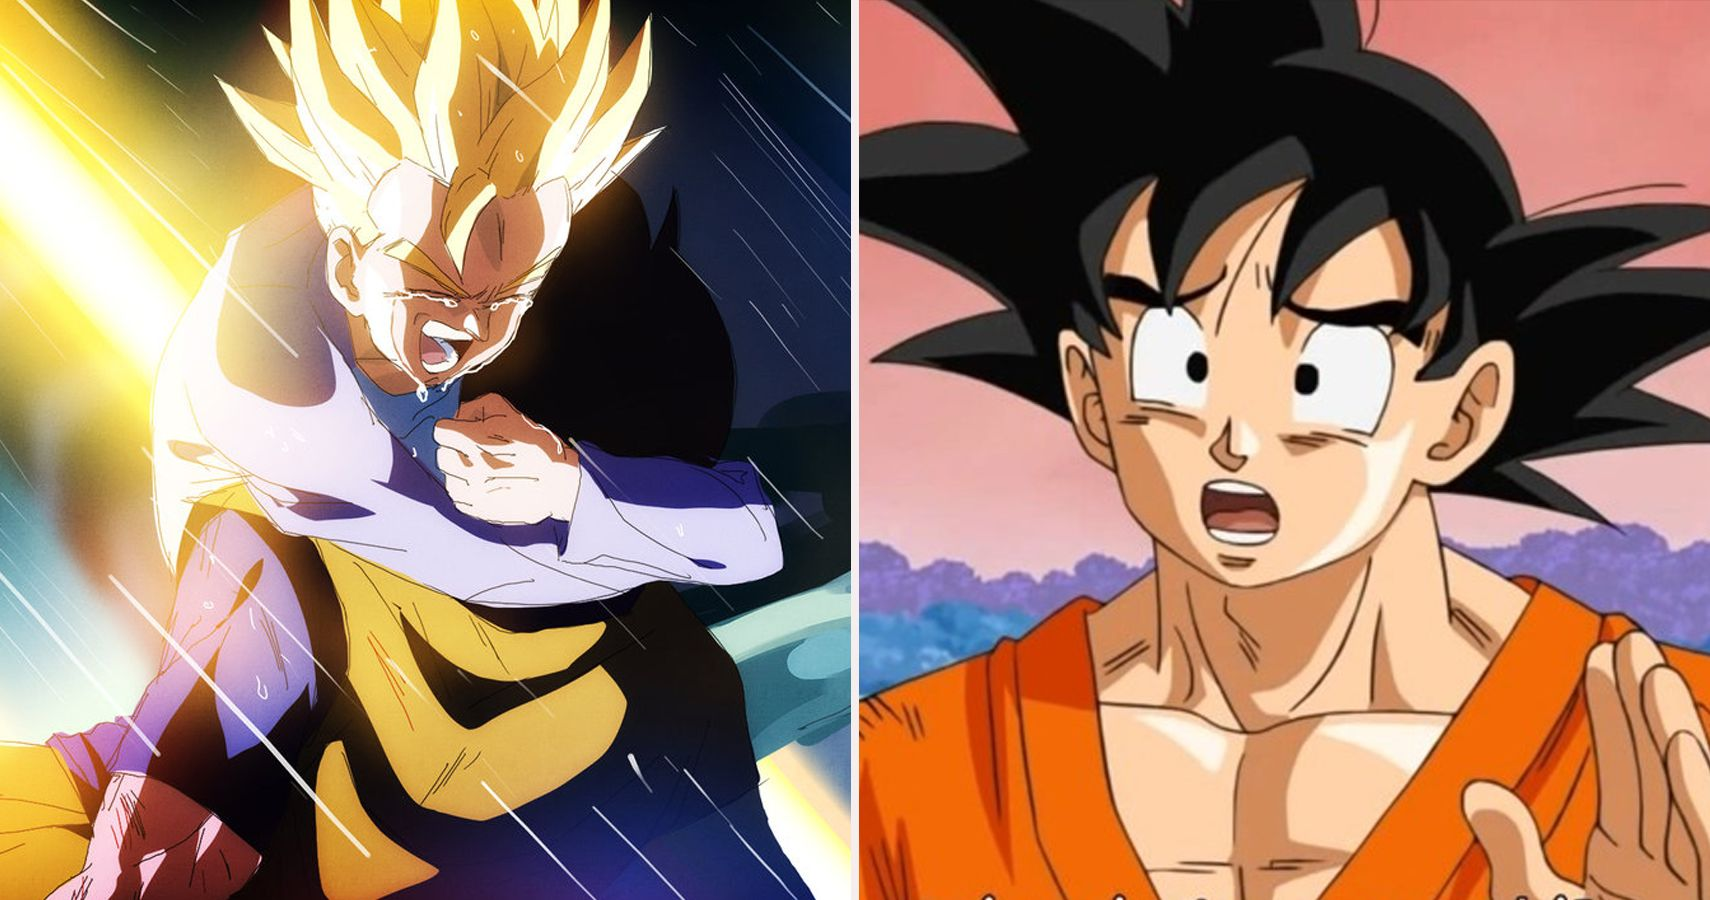 Final Fail Infuriating Dragon Ball Z Plot Holes Thegamer This saga is filler material made solely for the anime (not present in manga). dragon ball z plot holes